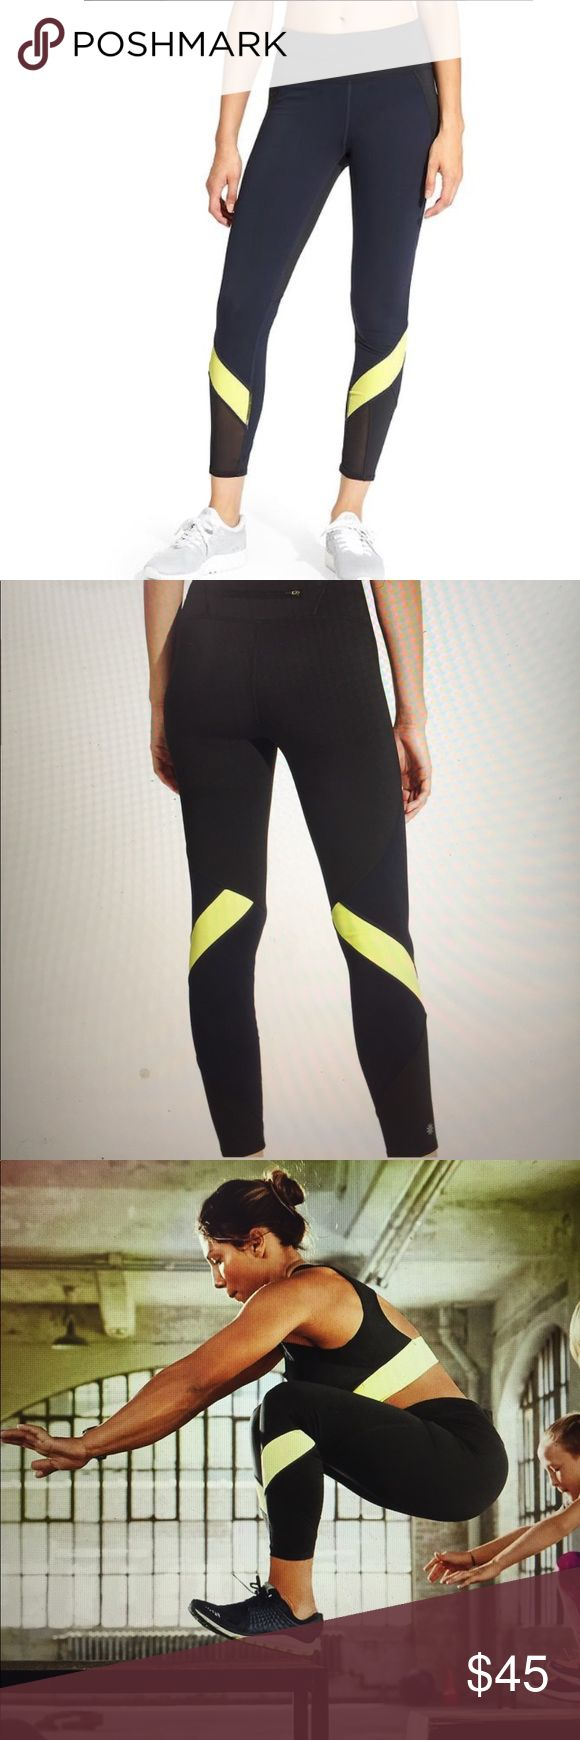 """NWT Athleta Colorblock Spliced Sonar 7/8 Tight New with tags. No flaws. Purchased for $84. From the Athleta website: """"The super-sleek, wicking tight with compression fabric and a 7/8 length to free up those ankles on your training days. INSPIRED FOR: gym/training, run, studio workouts Ultra-comfortable wide waistband, hidden key pocket NEVEREND DRAWSTRING. Fully adjustable continuous loop never gets lost in the wash Breathable CoolMax® crotch gusset Rear zip pocket stashes your stuff…"""